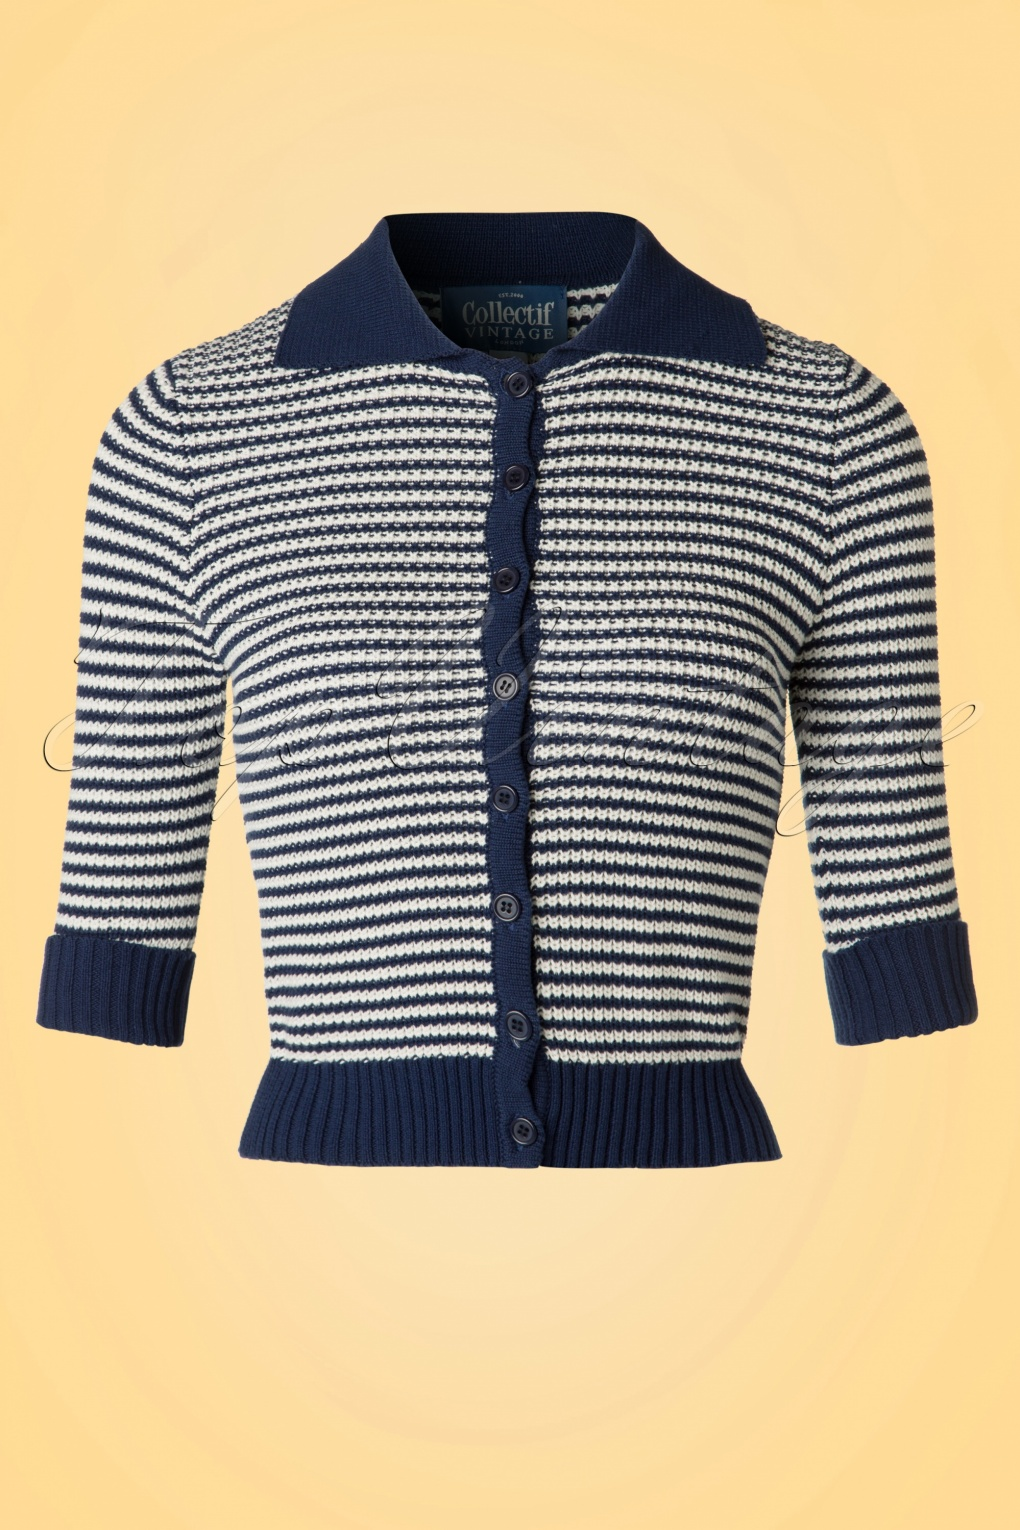 1940s Sweater Styles 50s Orchid Striped Cardigan in Navy and Ivory £52.64 AT vintagedancer.com